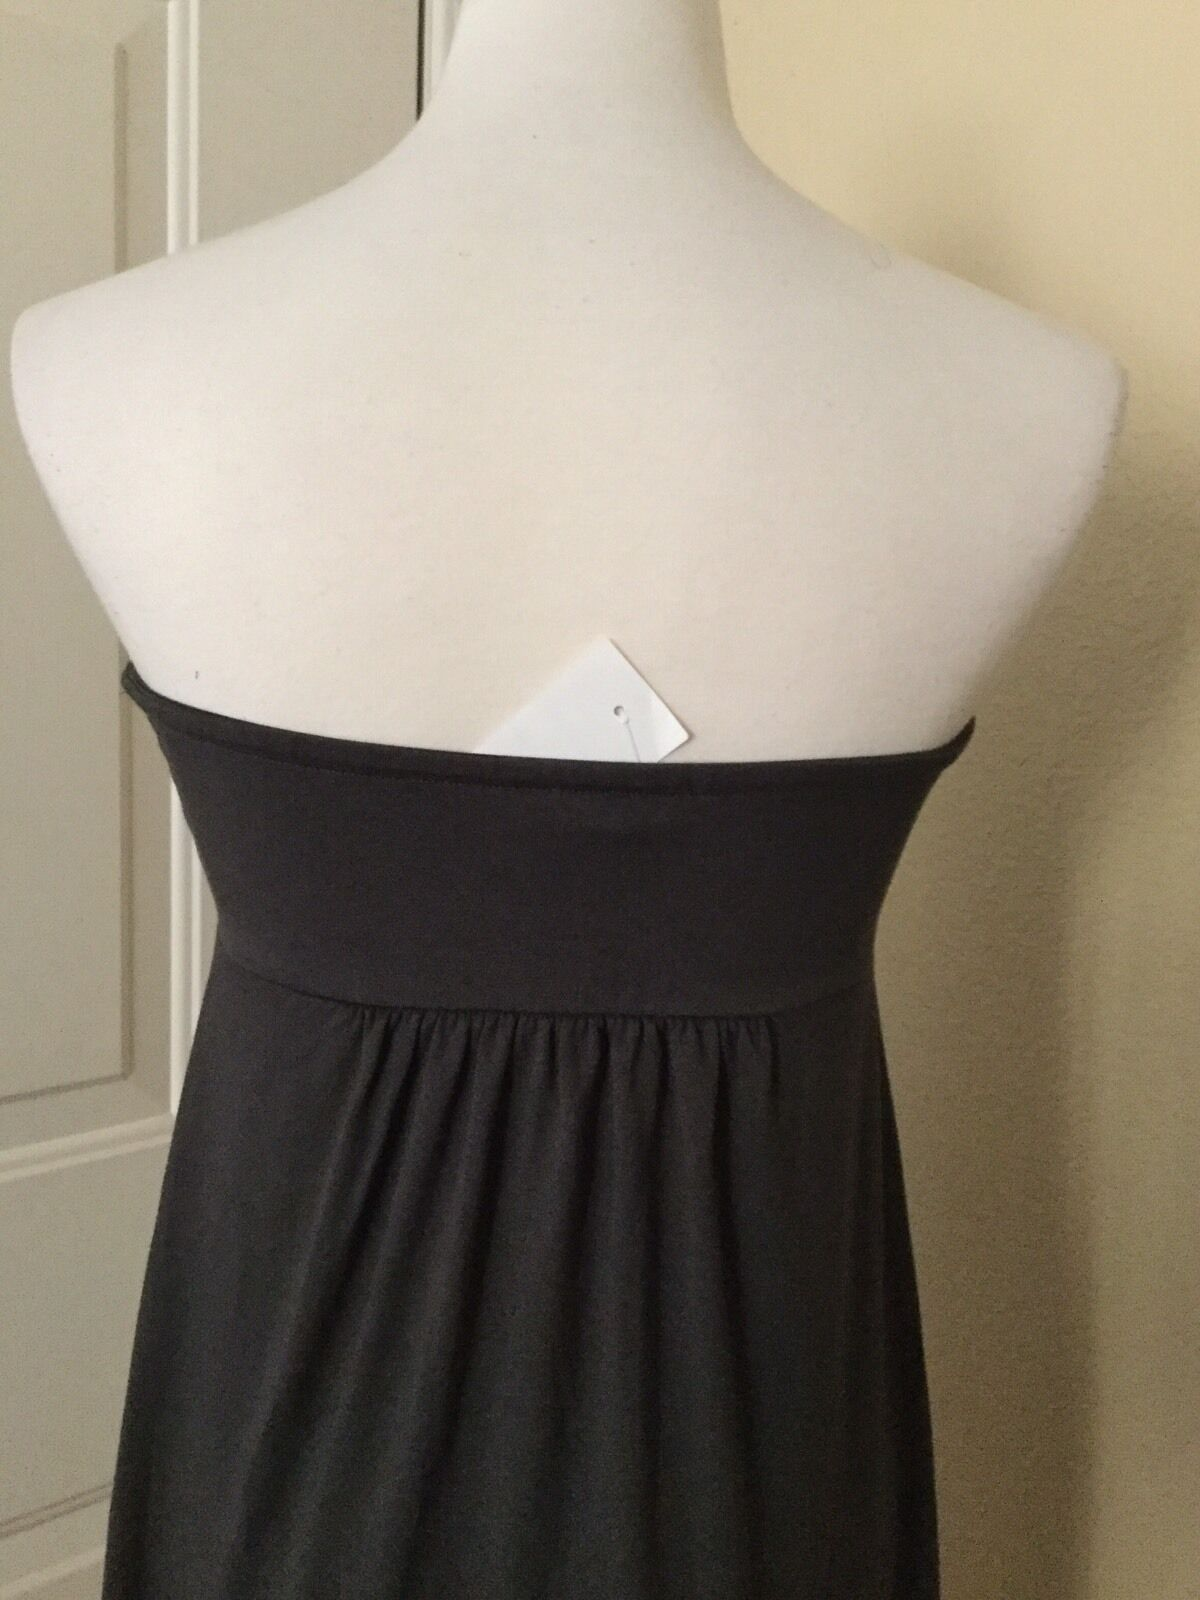 NWT J.CREW Dressy Jersey Strapless Dress in Gray, Size Small image 3